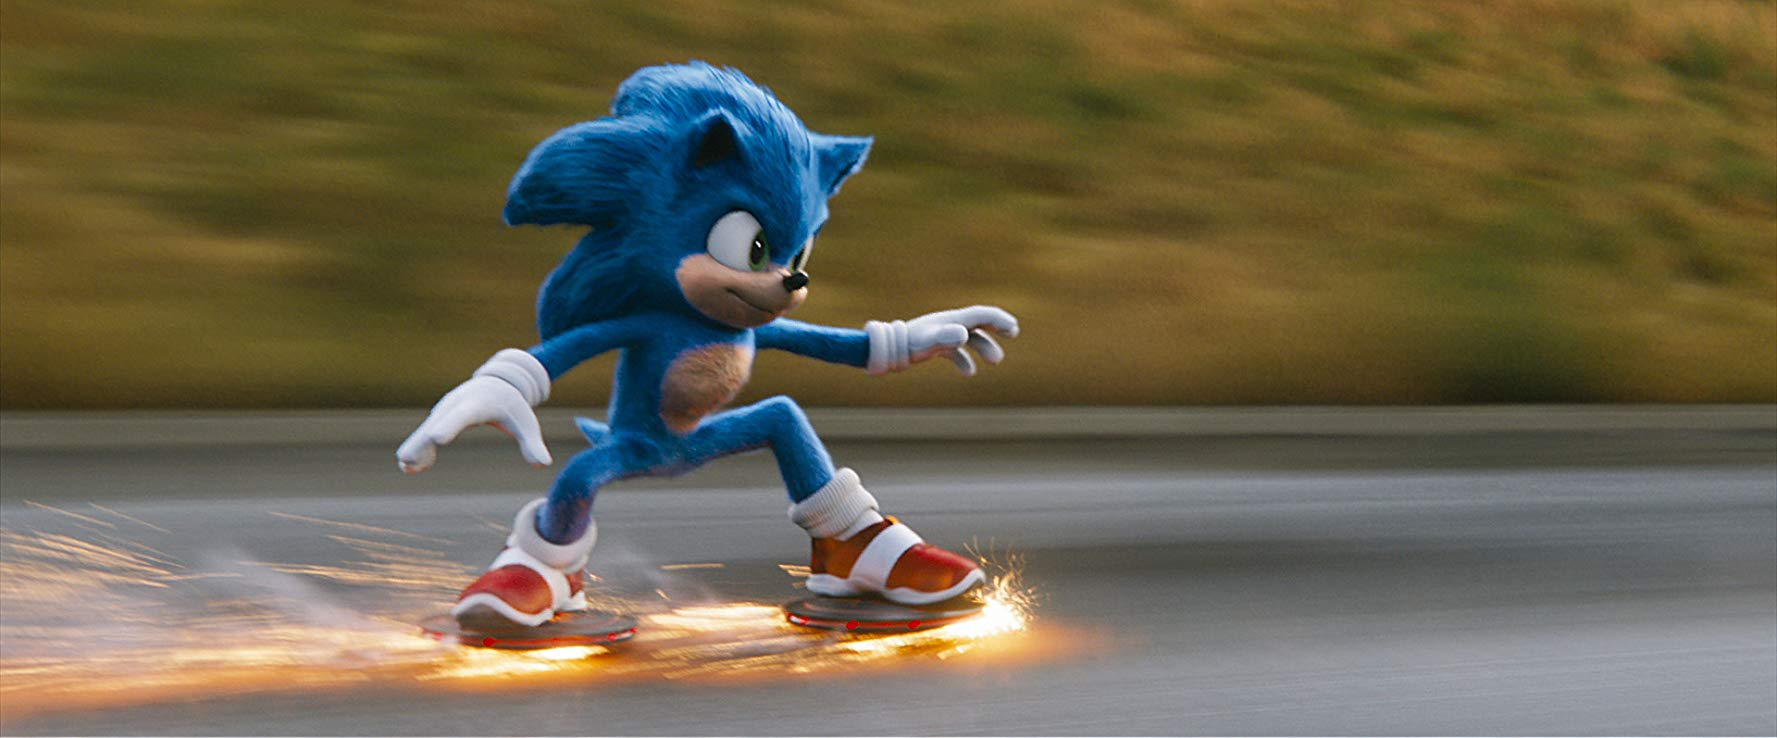 Sonic The Hedgehog is a quick fun time for the family